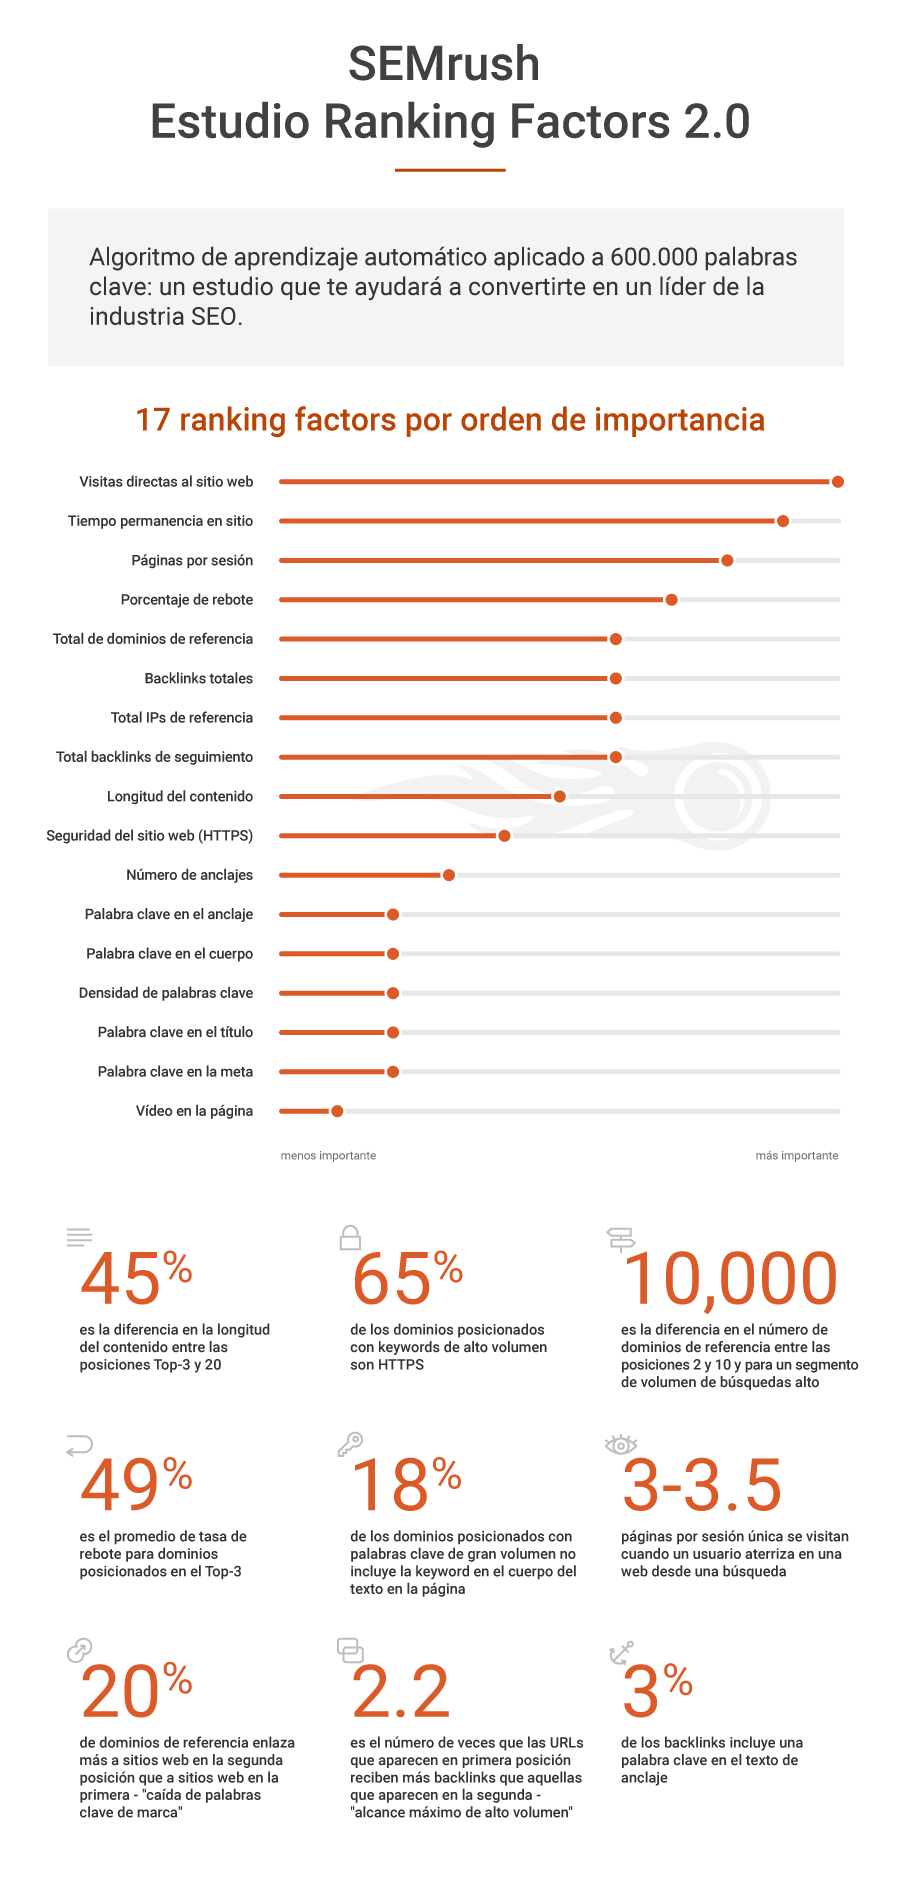 Estudio SEMrush Ranking Factors - Infografía